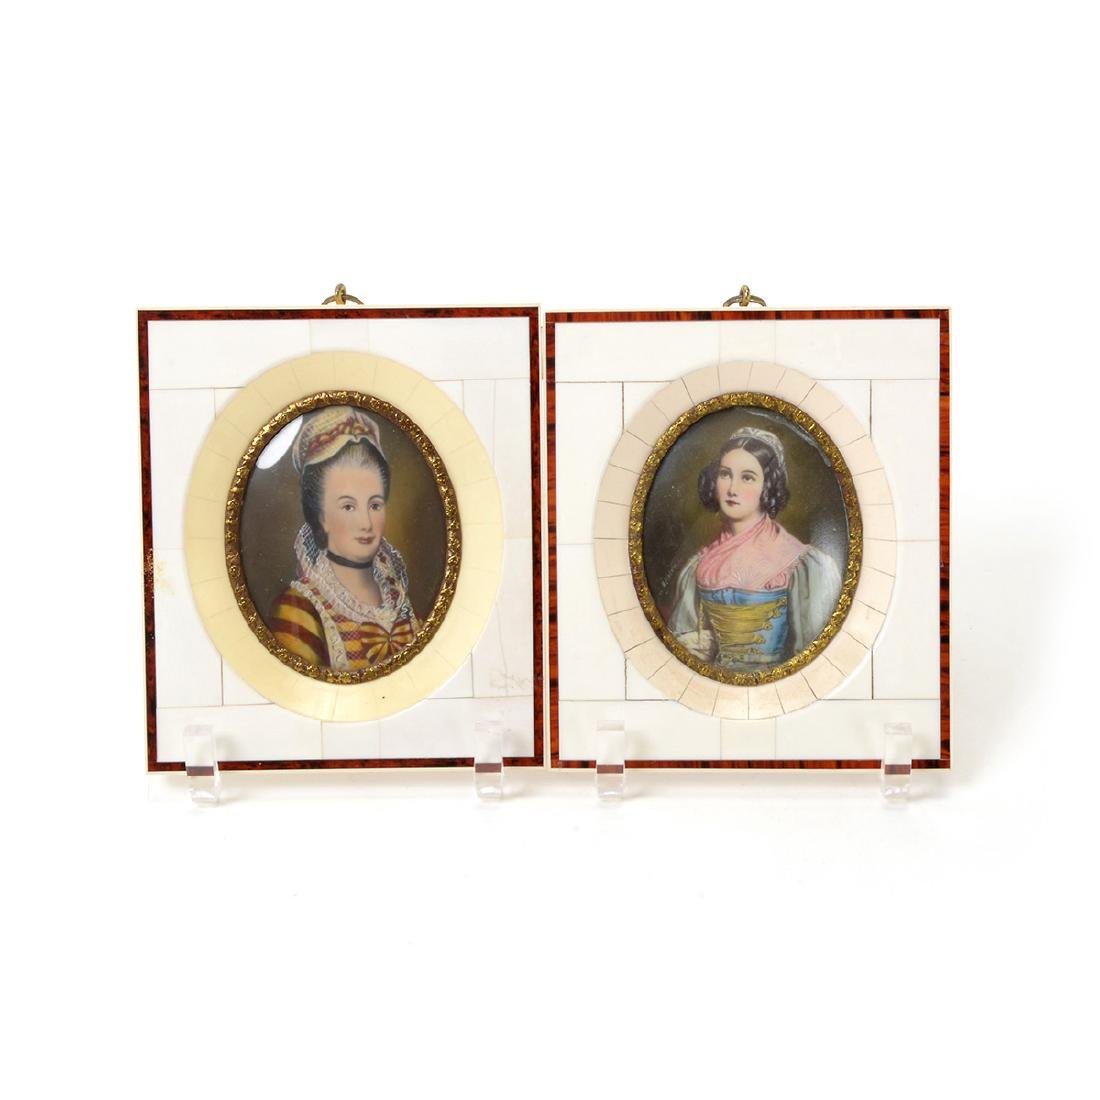 Twelve Miniature Portraits in Piano Key Frames - 4